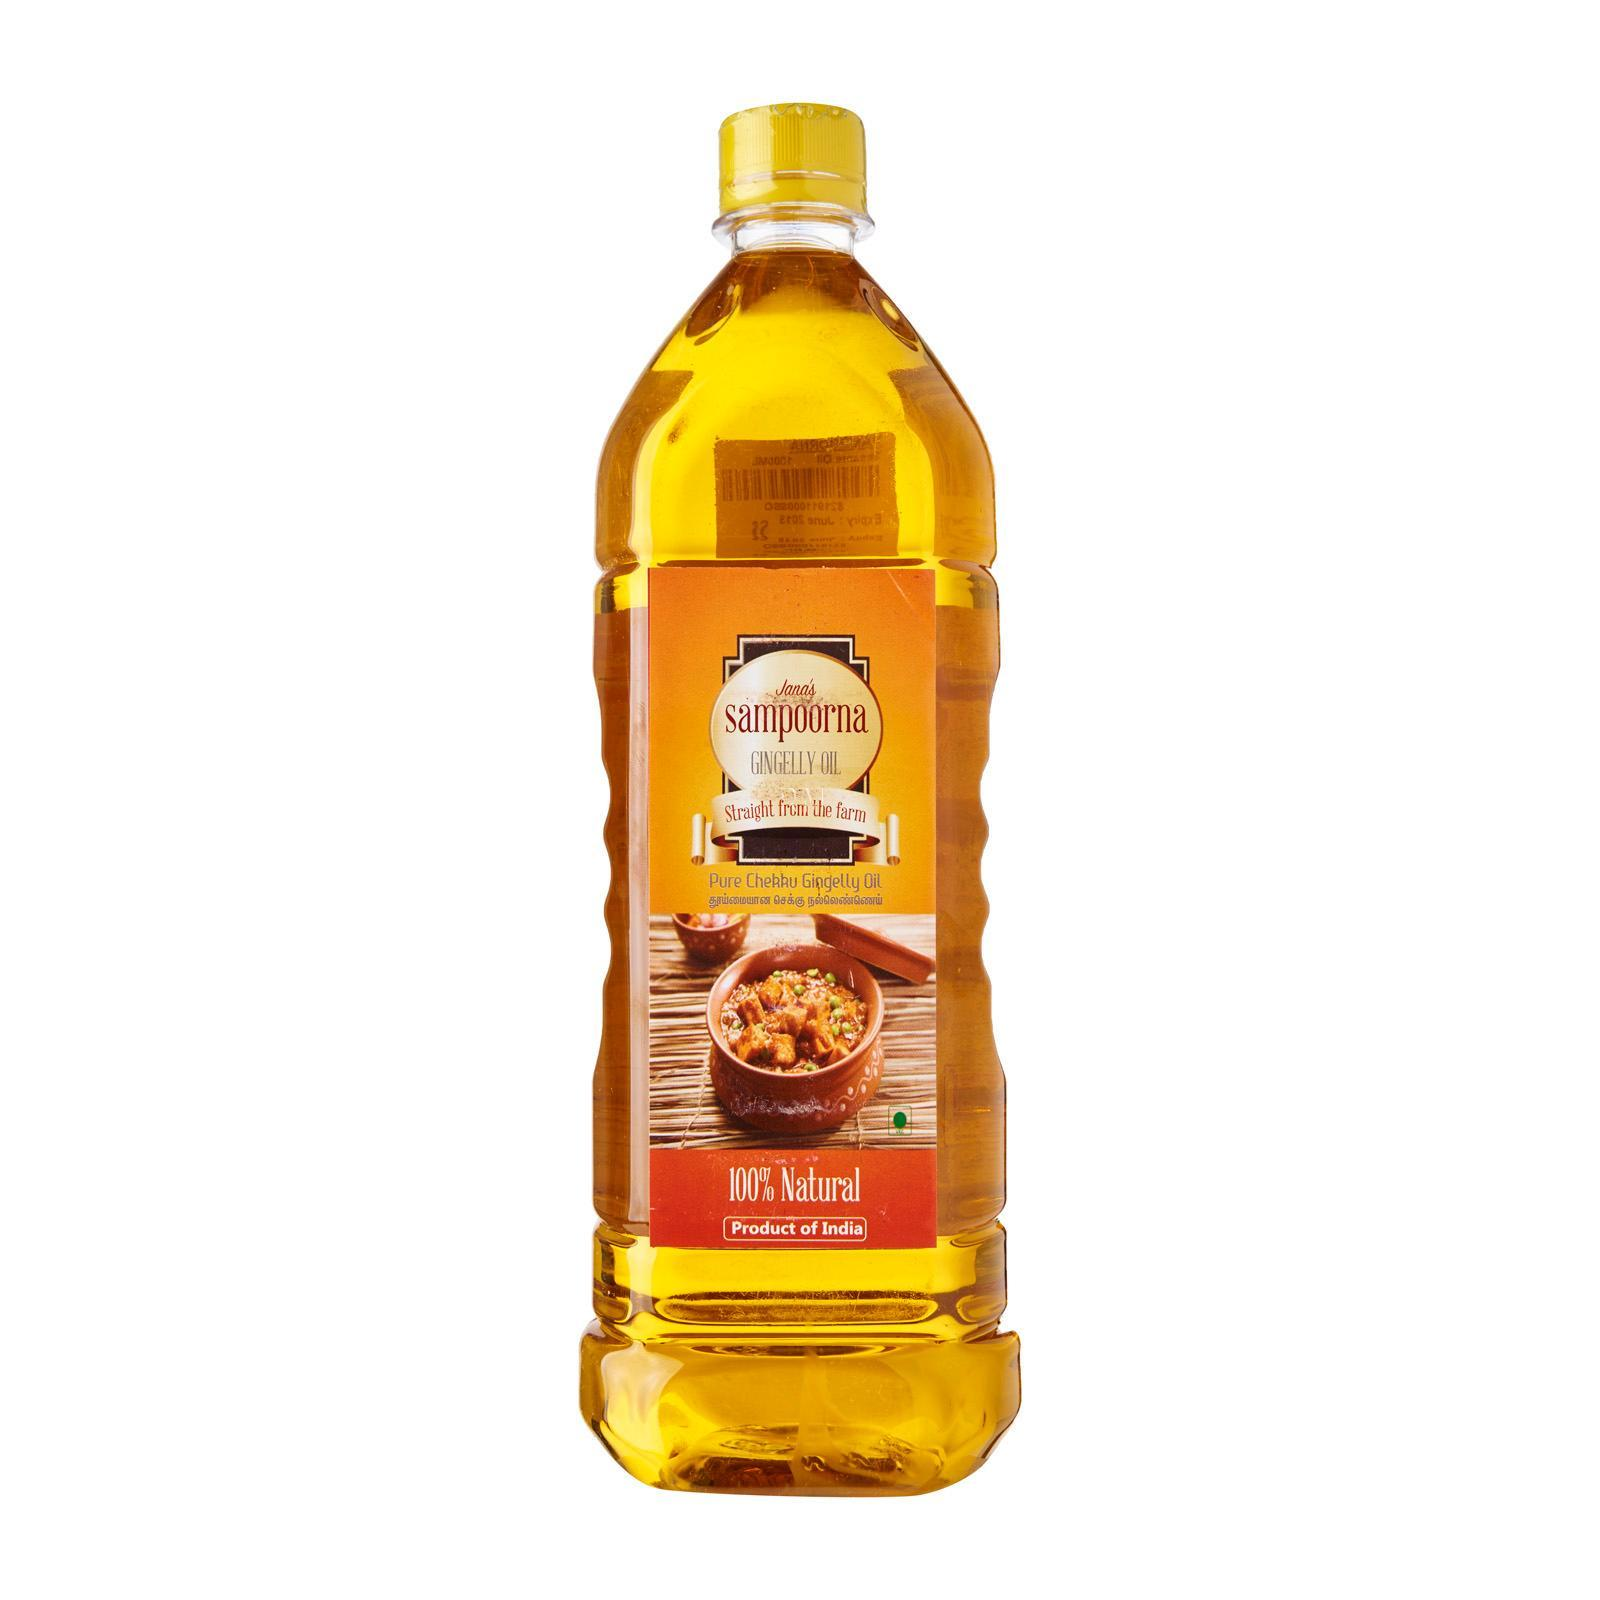 Sampoorna Chekku / Metal Pressed Sesame Oil By Redmart.